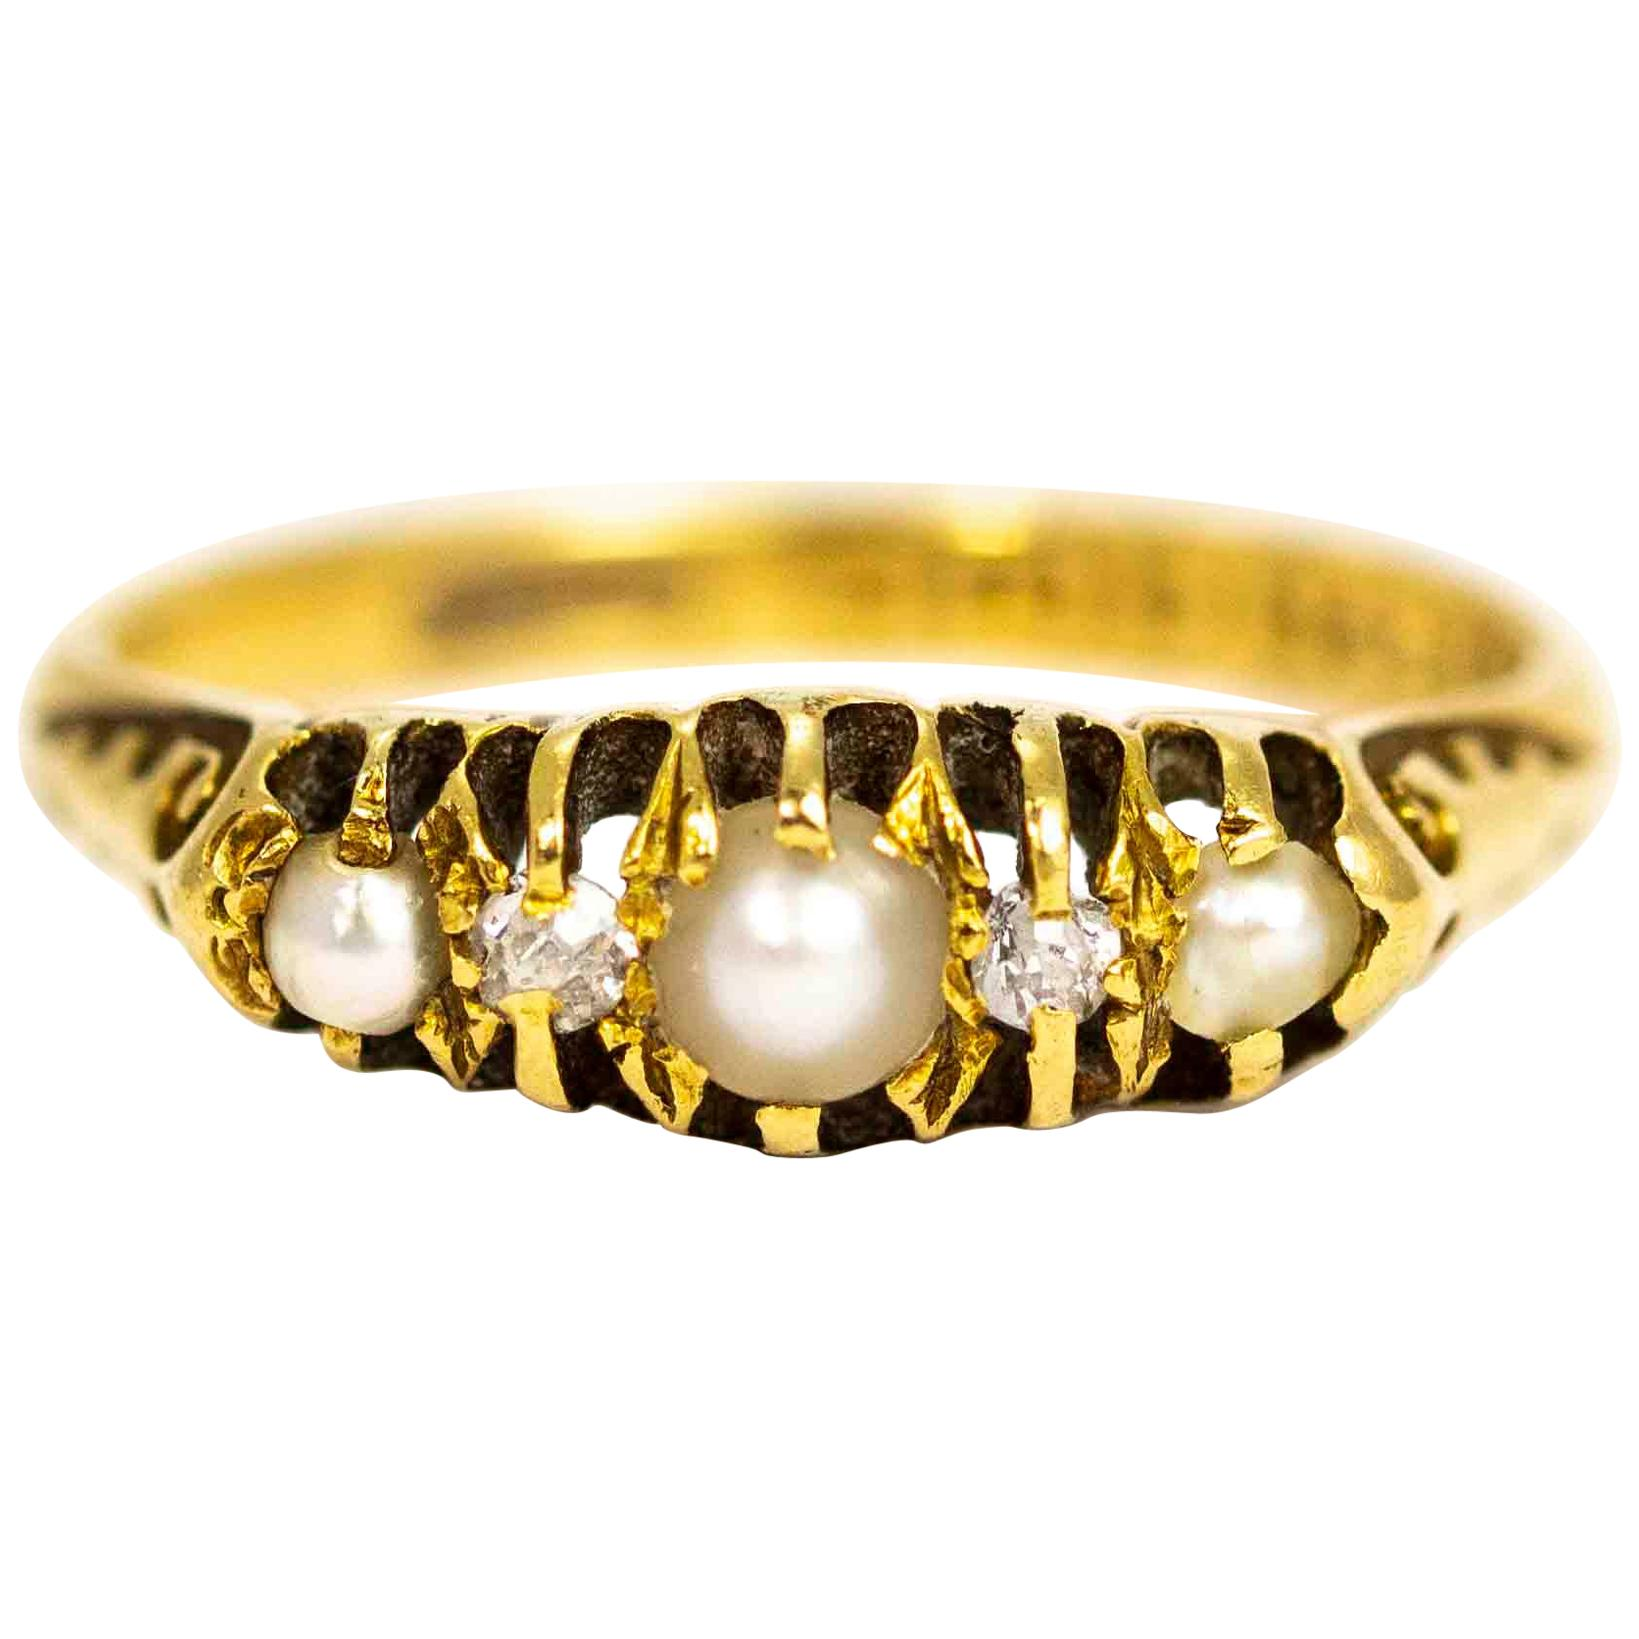 Edwardian 18 Carat Gold Diamond and Pearl Five-Stone Ring